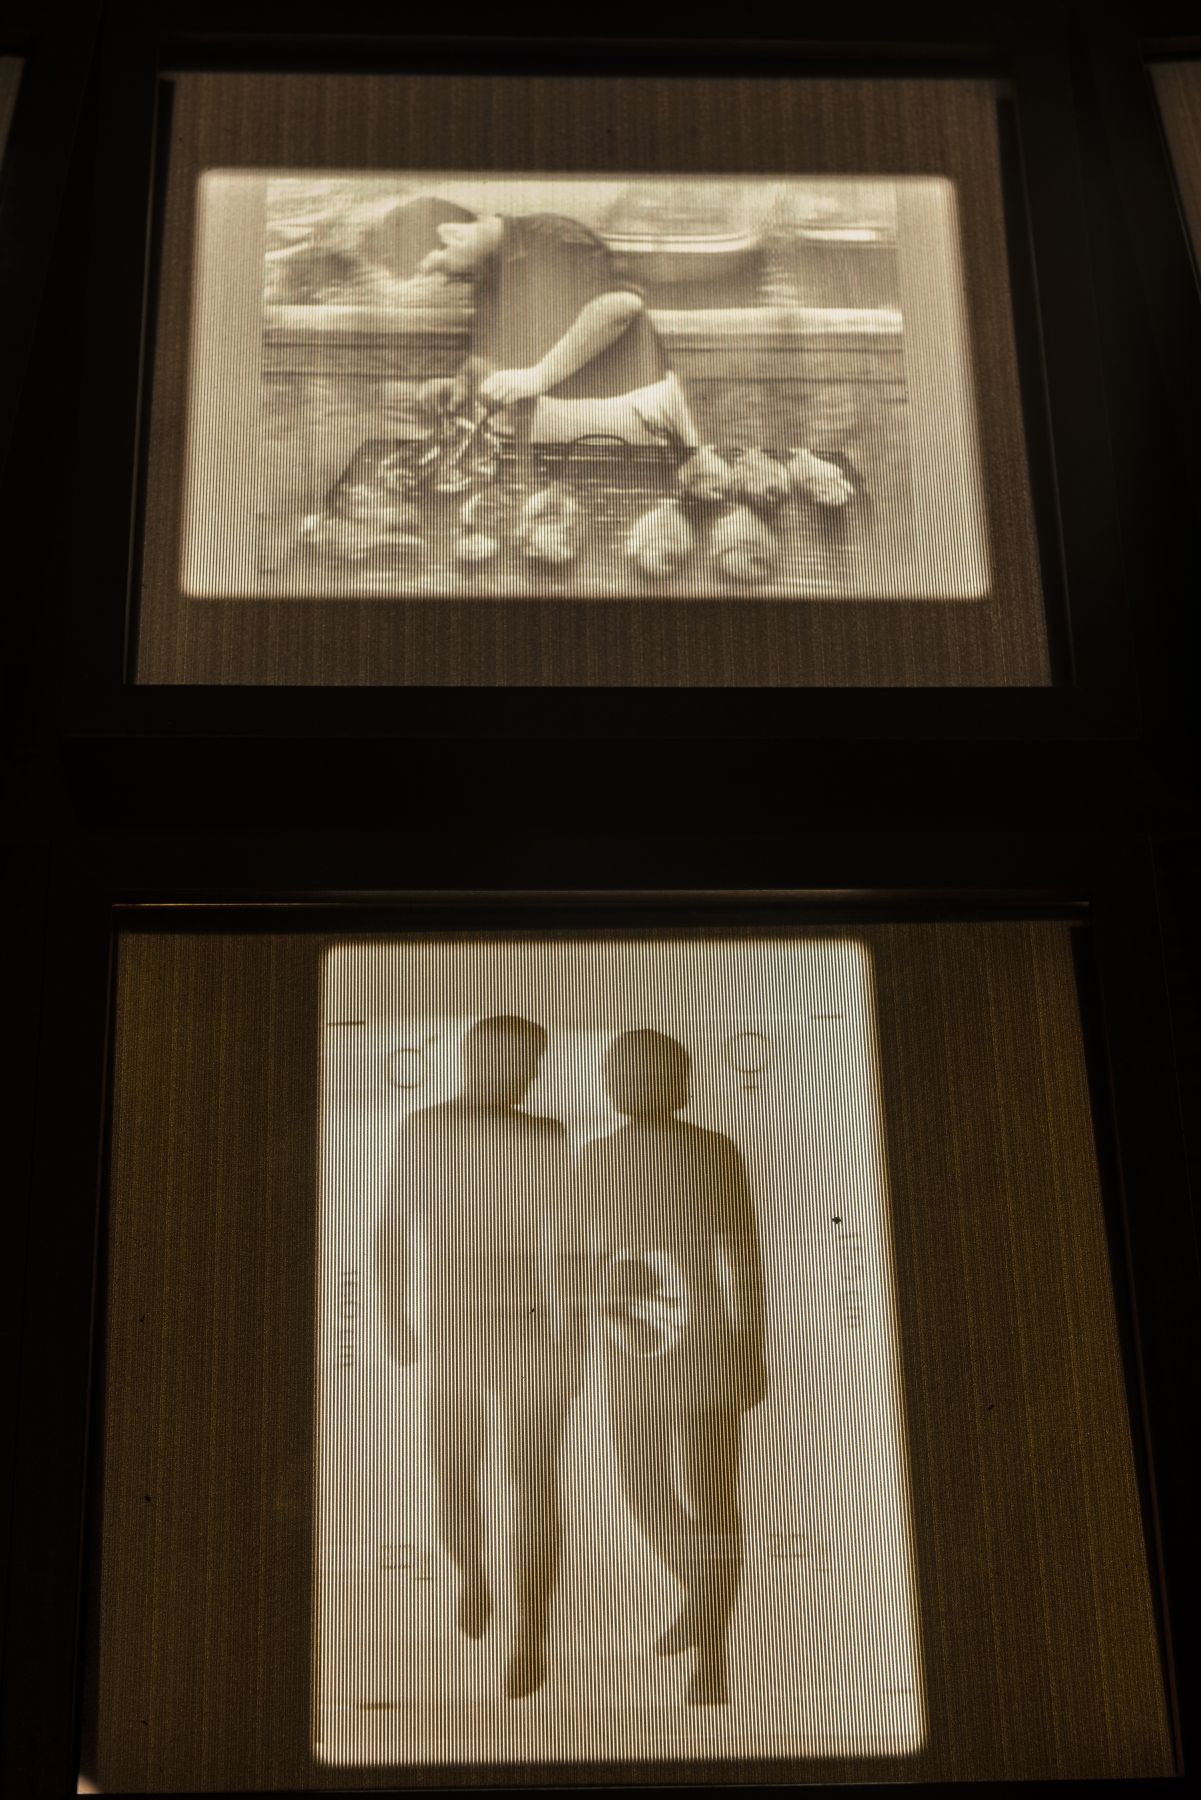 Close up photo of 3D transparencies of images from the Golden Record. On top, there is san image of a man barbecuing, and on the bottom there is a graphic with a man and woman and her reproductive organs.